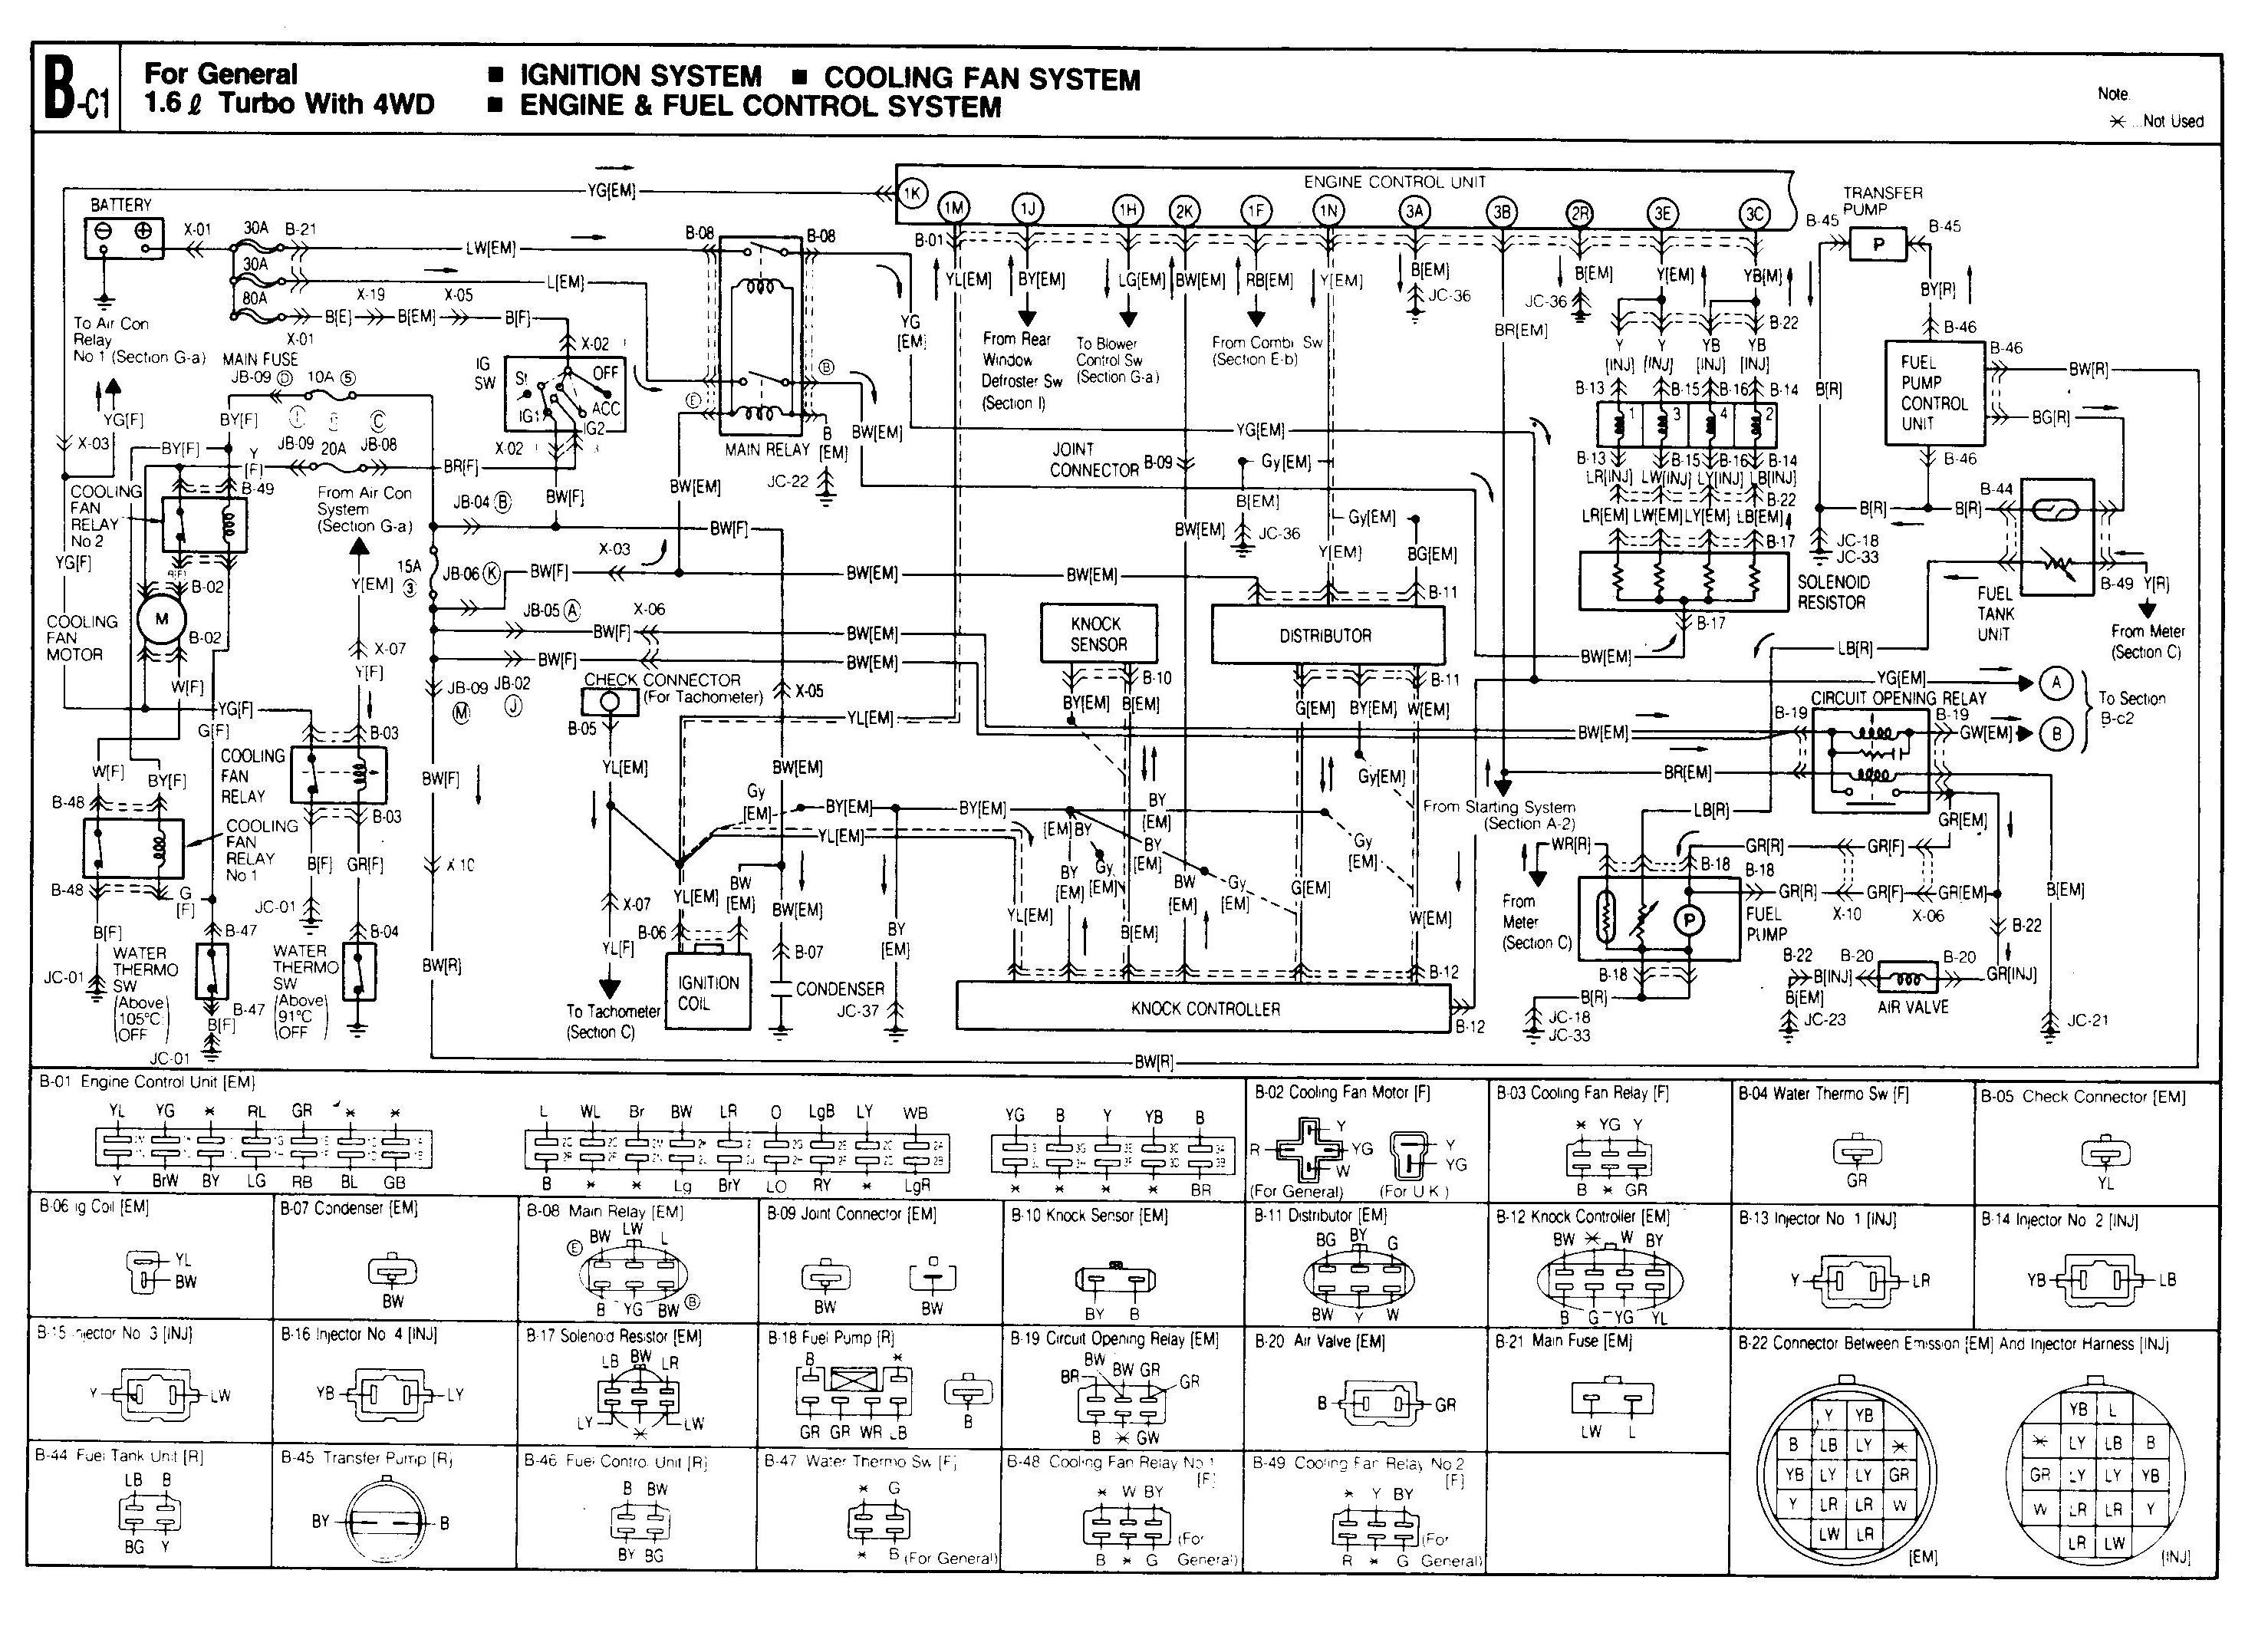 350z Engine Diagram Mazda Protege Hvac System Wiring Diagram Worksheet and Wiring Of 350z Engine Diagram 2005 350z Automotif and Modification